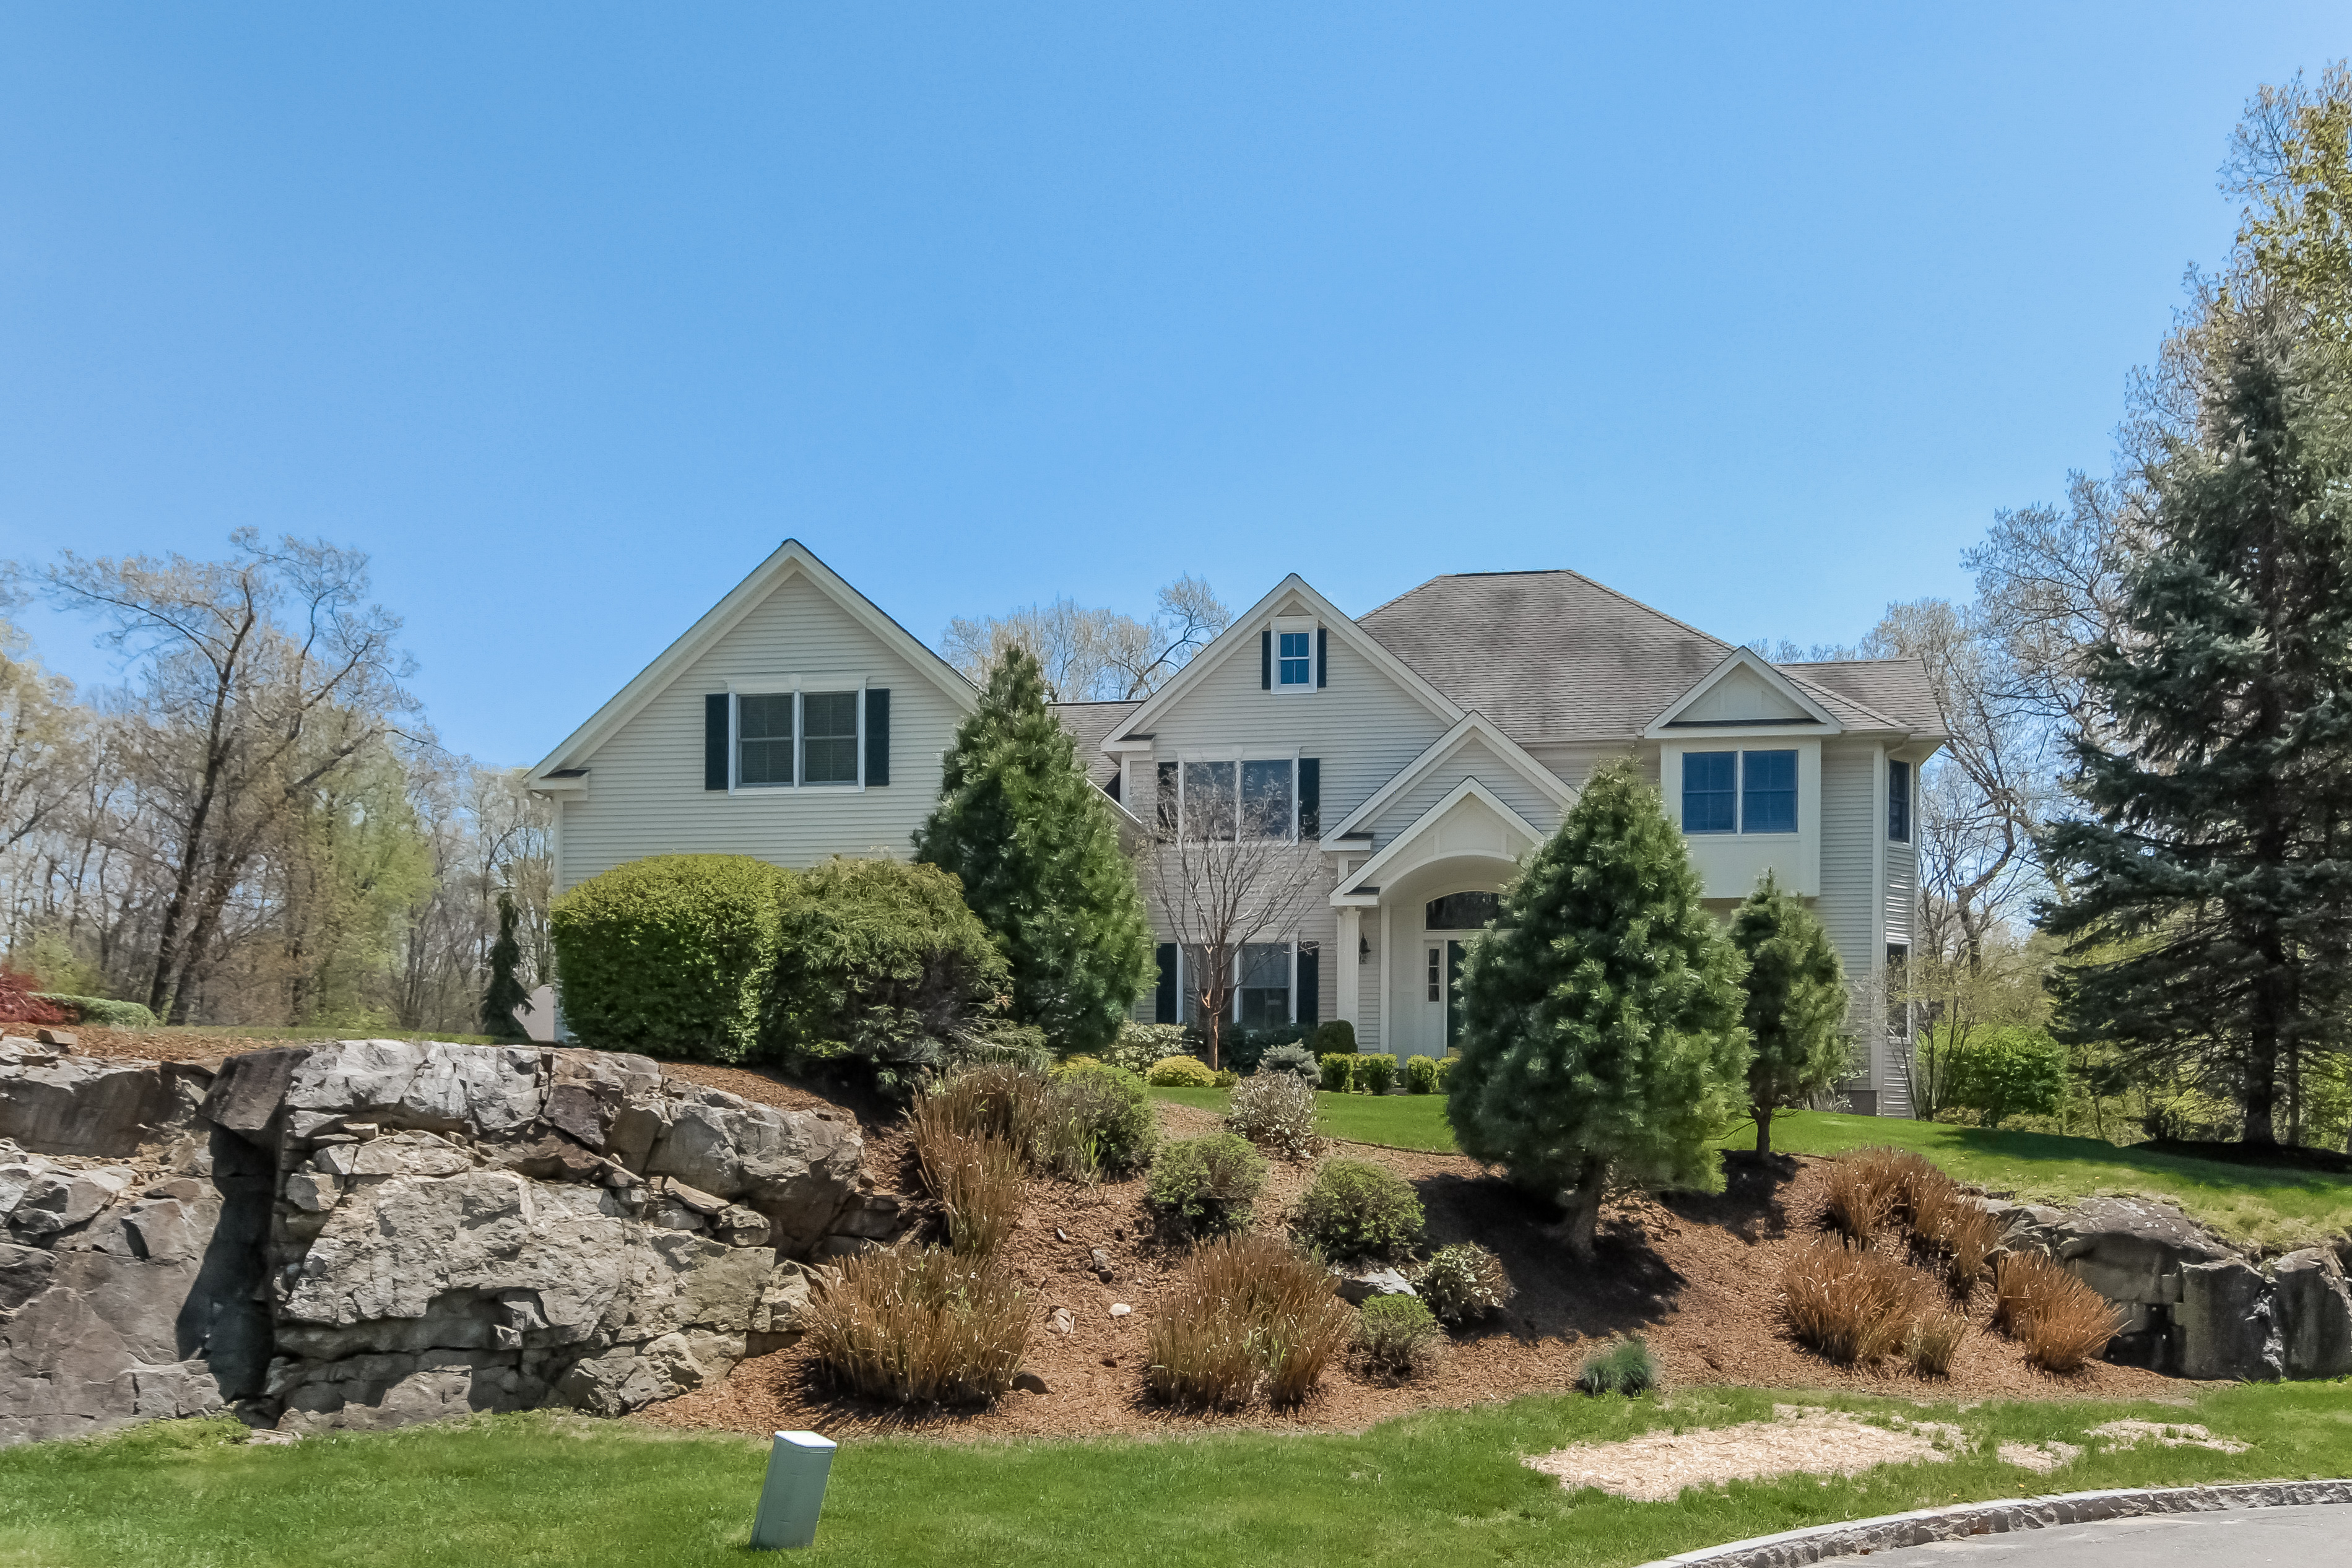 단독 가정 주택 용 매매 에 Sophisticated Home For Gracious Living 11 Woodstone Court Danbury, 코네티컷, 06811 미국